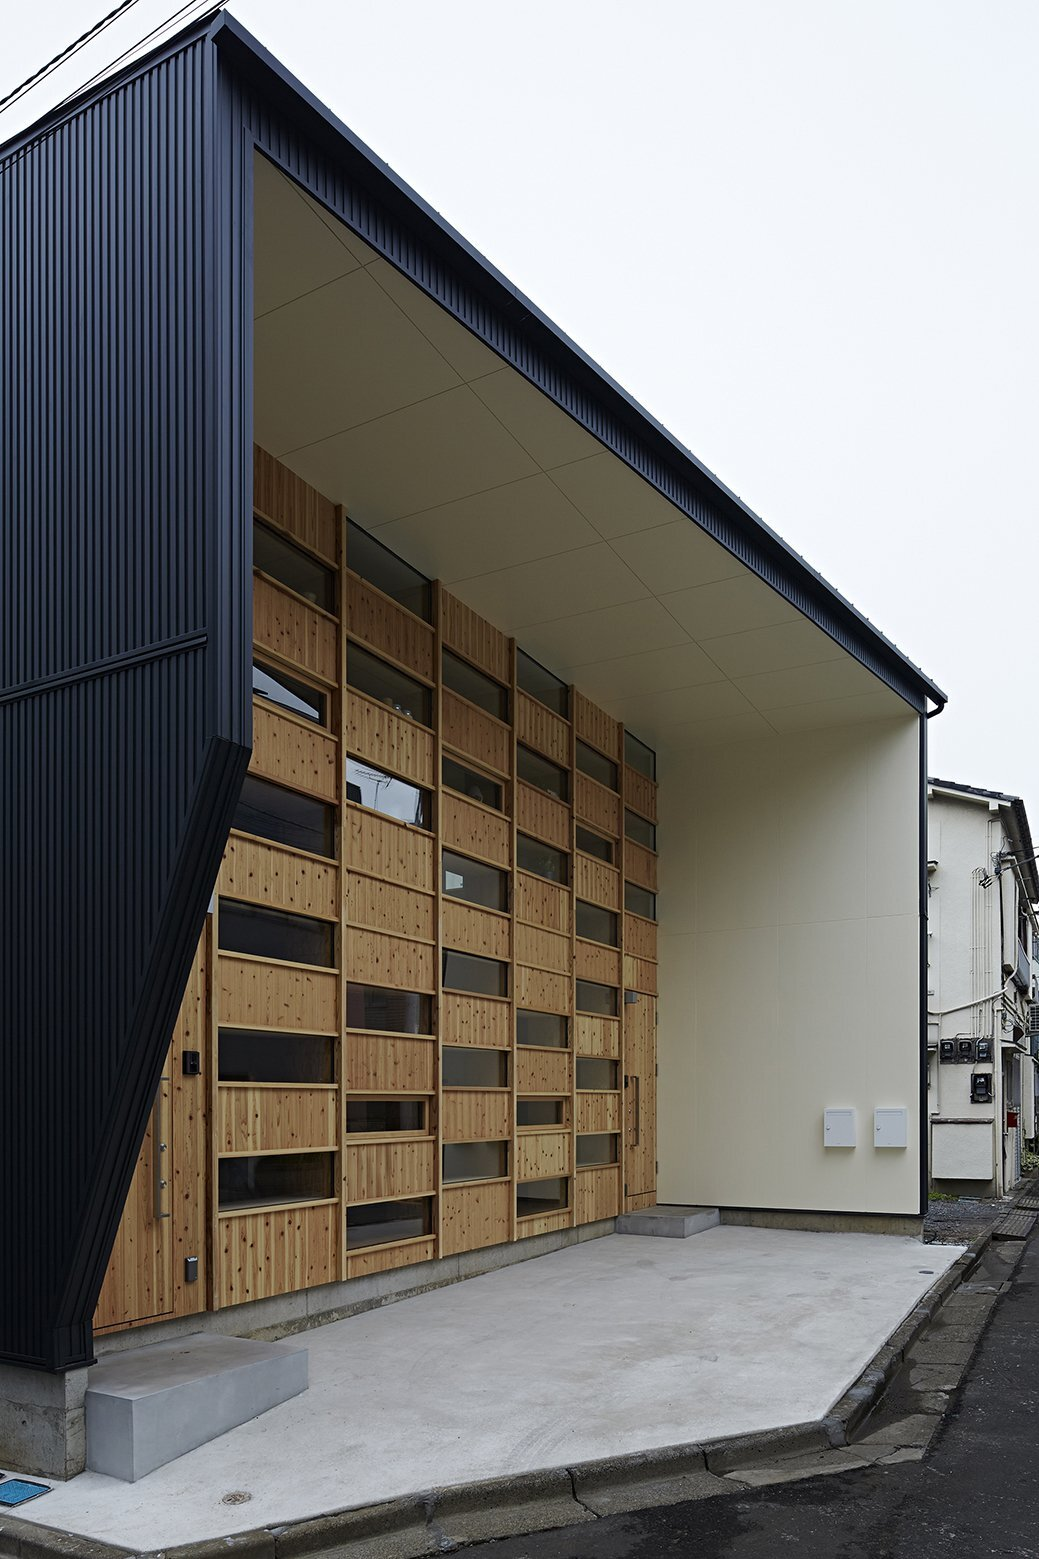 Checkered House - Takeshi Shikauchi Architect Office - Tokyo - Exterior - Humble Homes